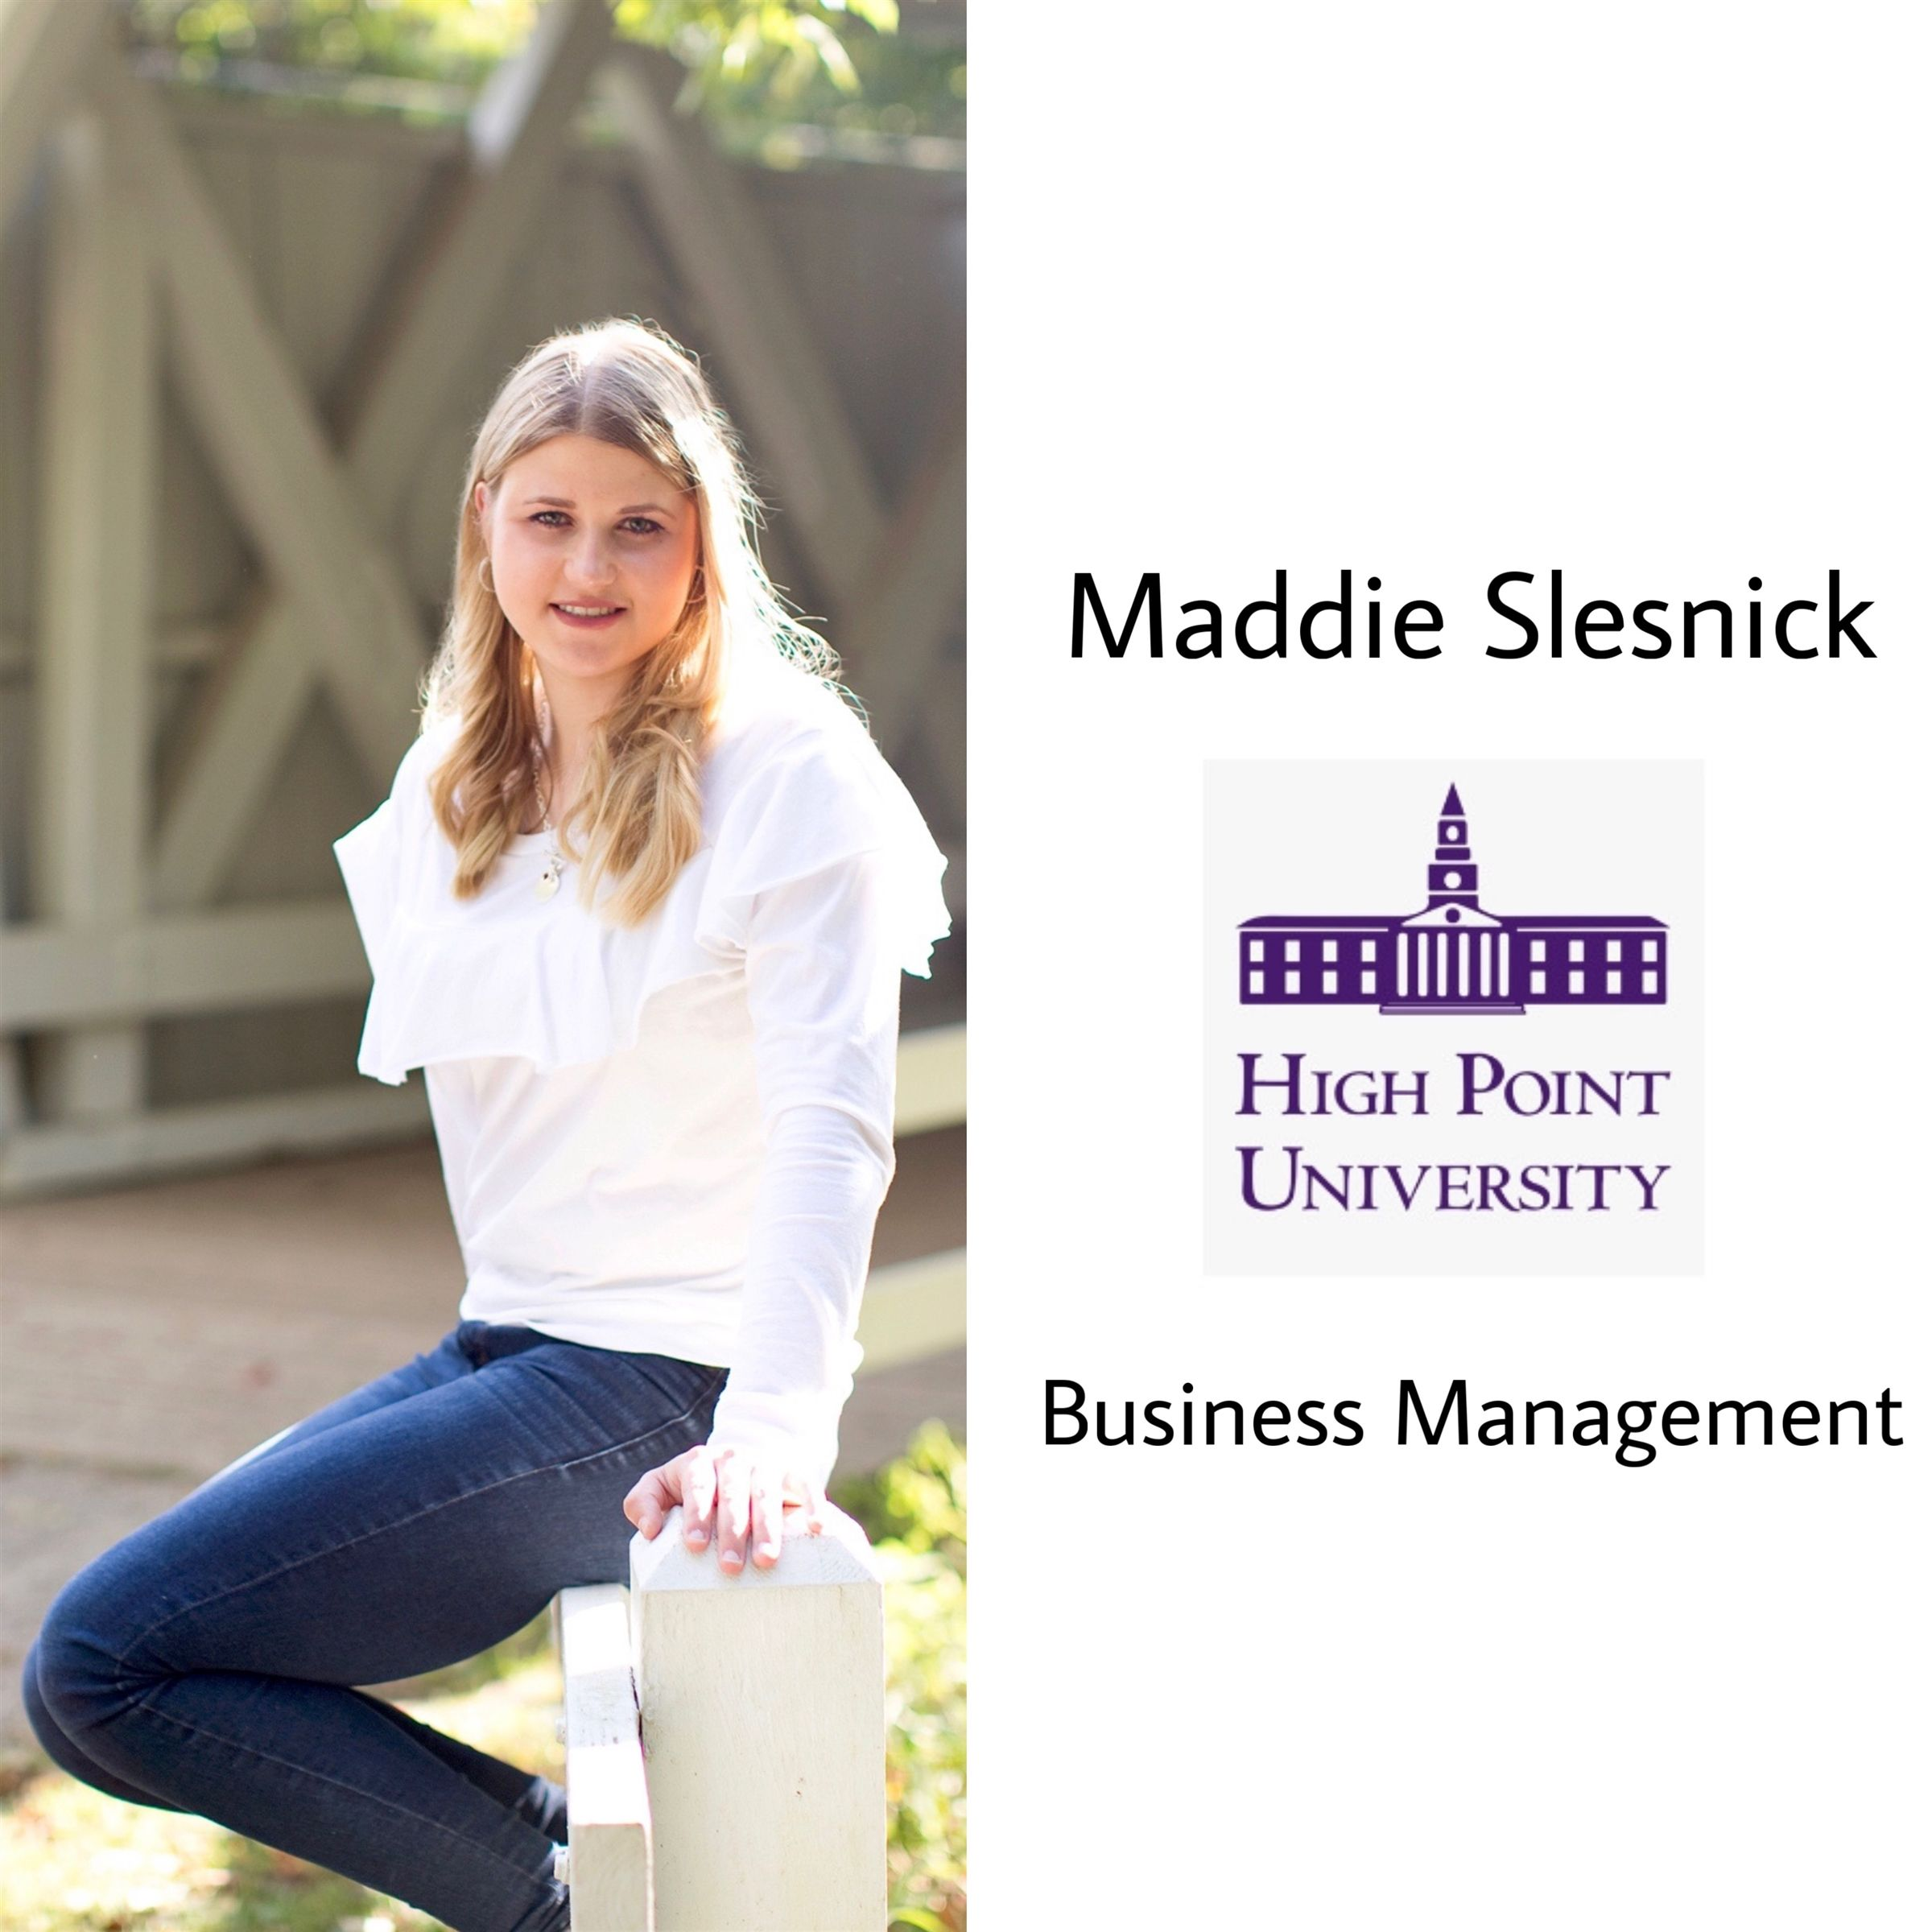 Congrats Maddie!! She will be attending High Point University next year majoring in business management :)